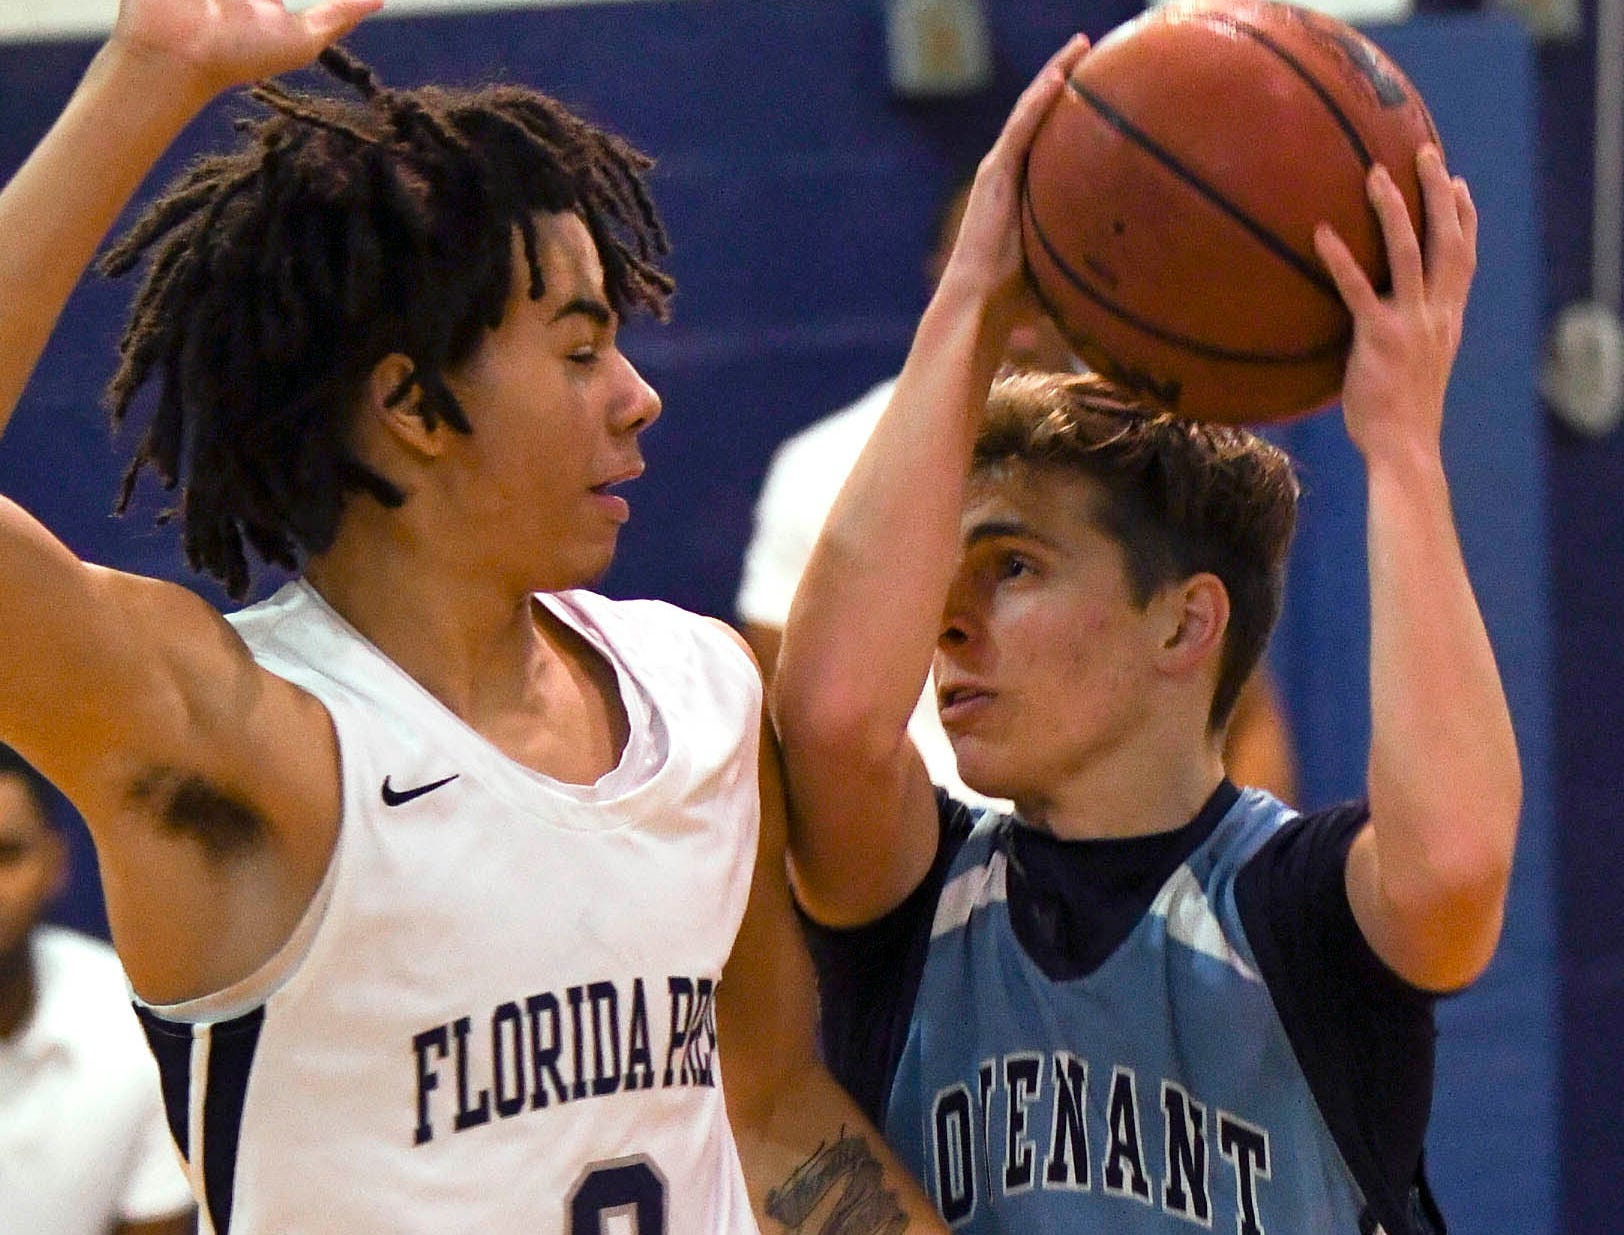 Tre Smith of Florida Prep guards Joseph Cowling of Covenant Christian during Tuesday's game at Florida Prep.